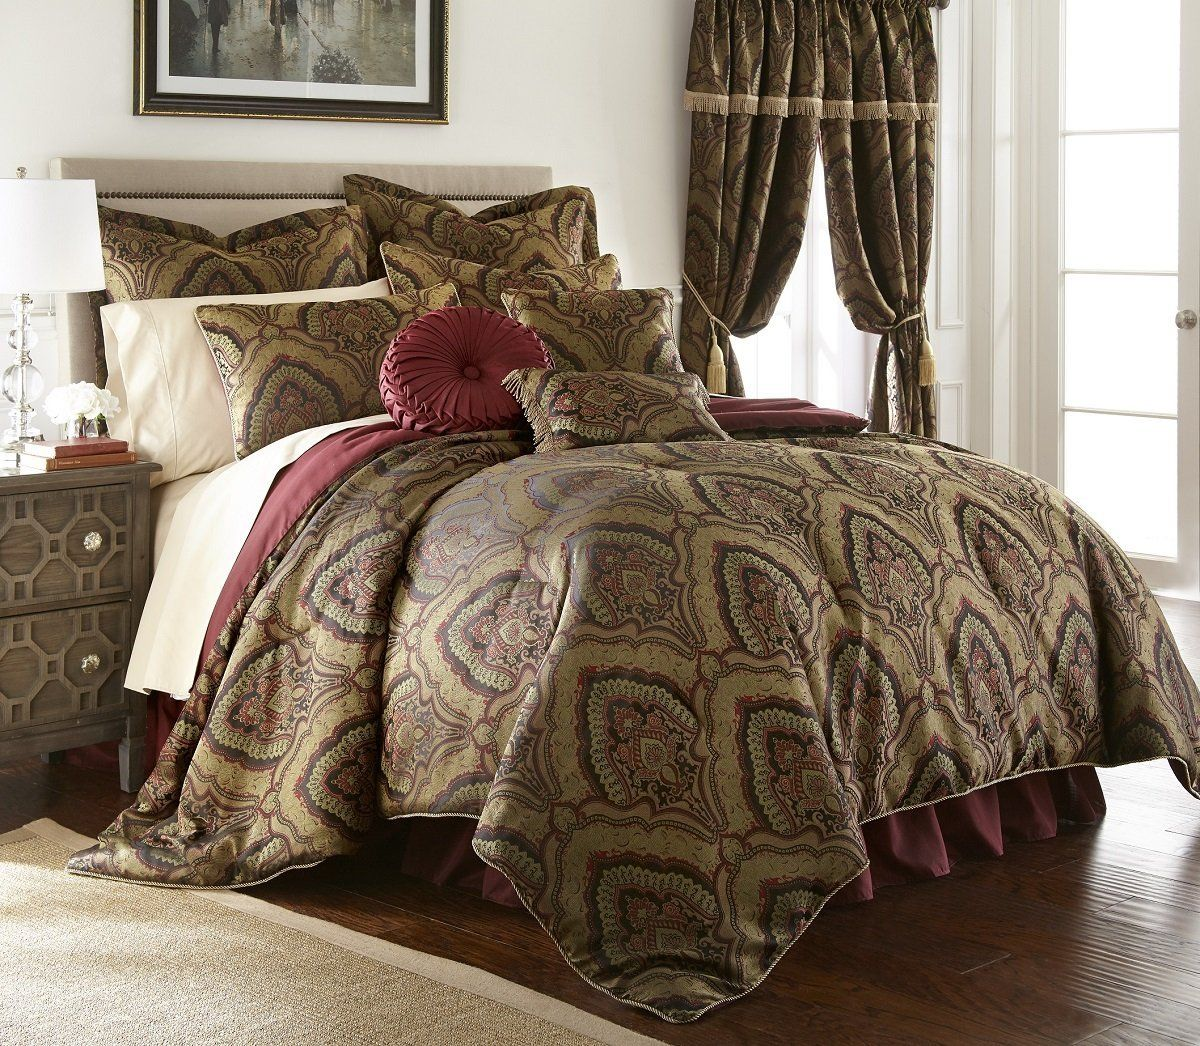 windsor bedding queen new medallion j by fleur oversized set sets p york comforter butter